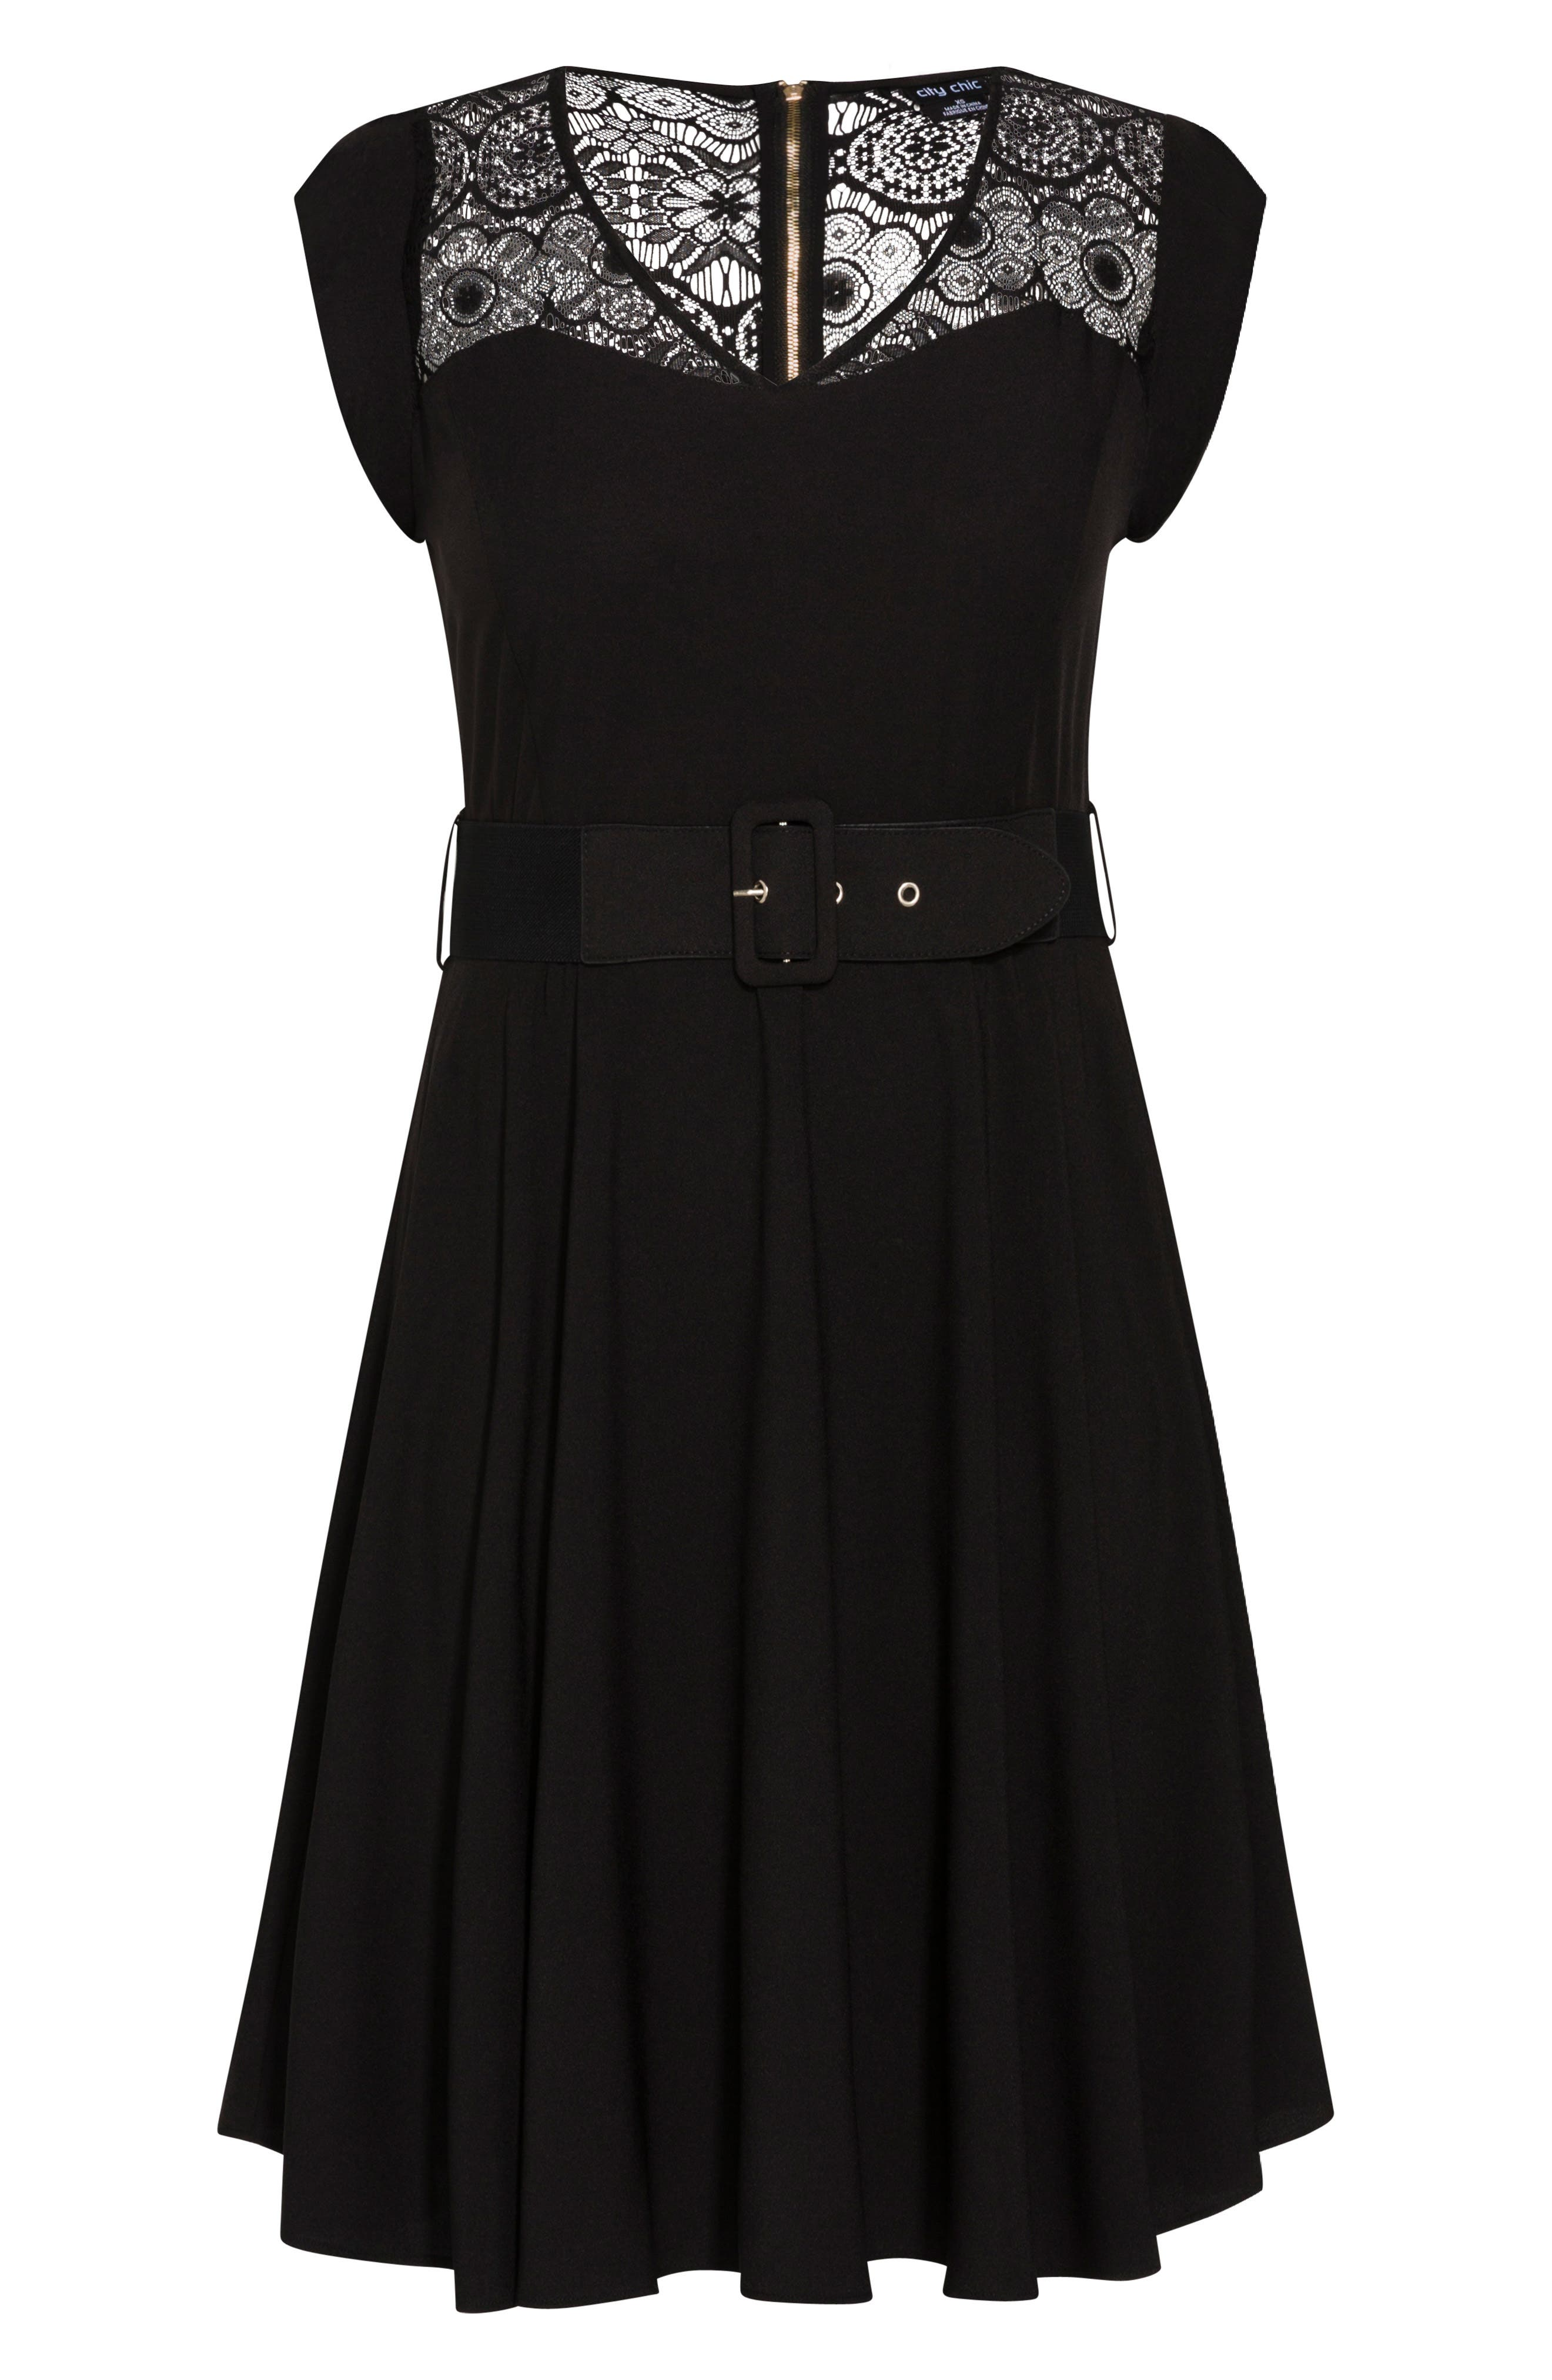 CITY CHIC, Lace Yoke Fit & Flare Dress, Alternate thumbnail 3, color, BLACK